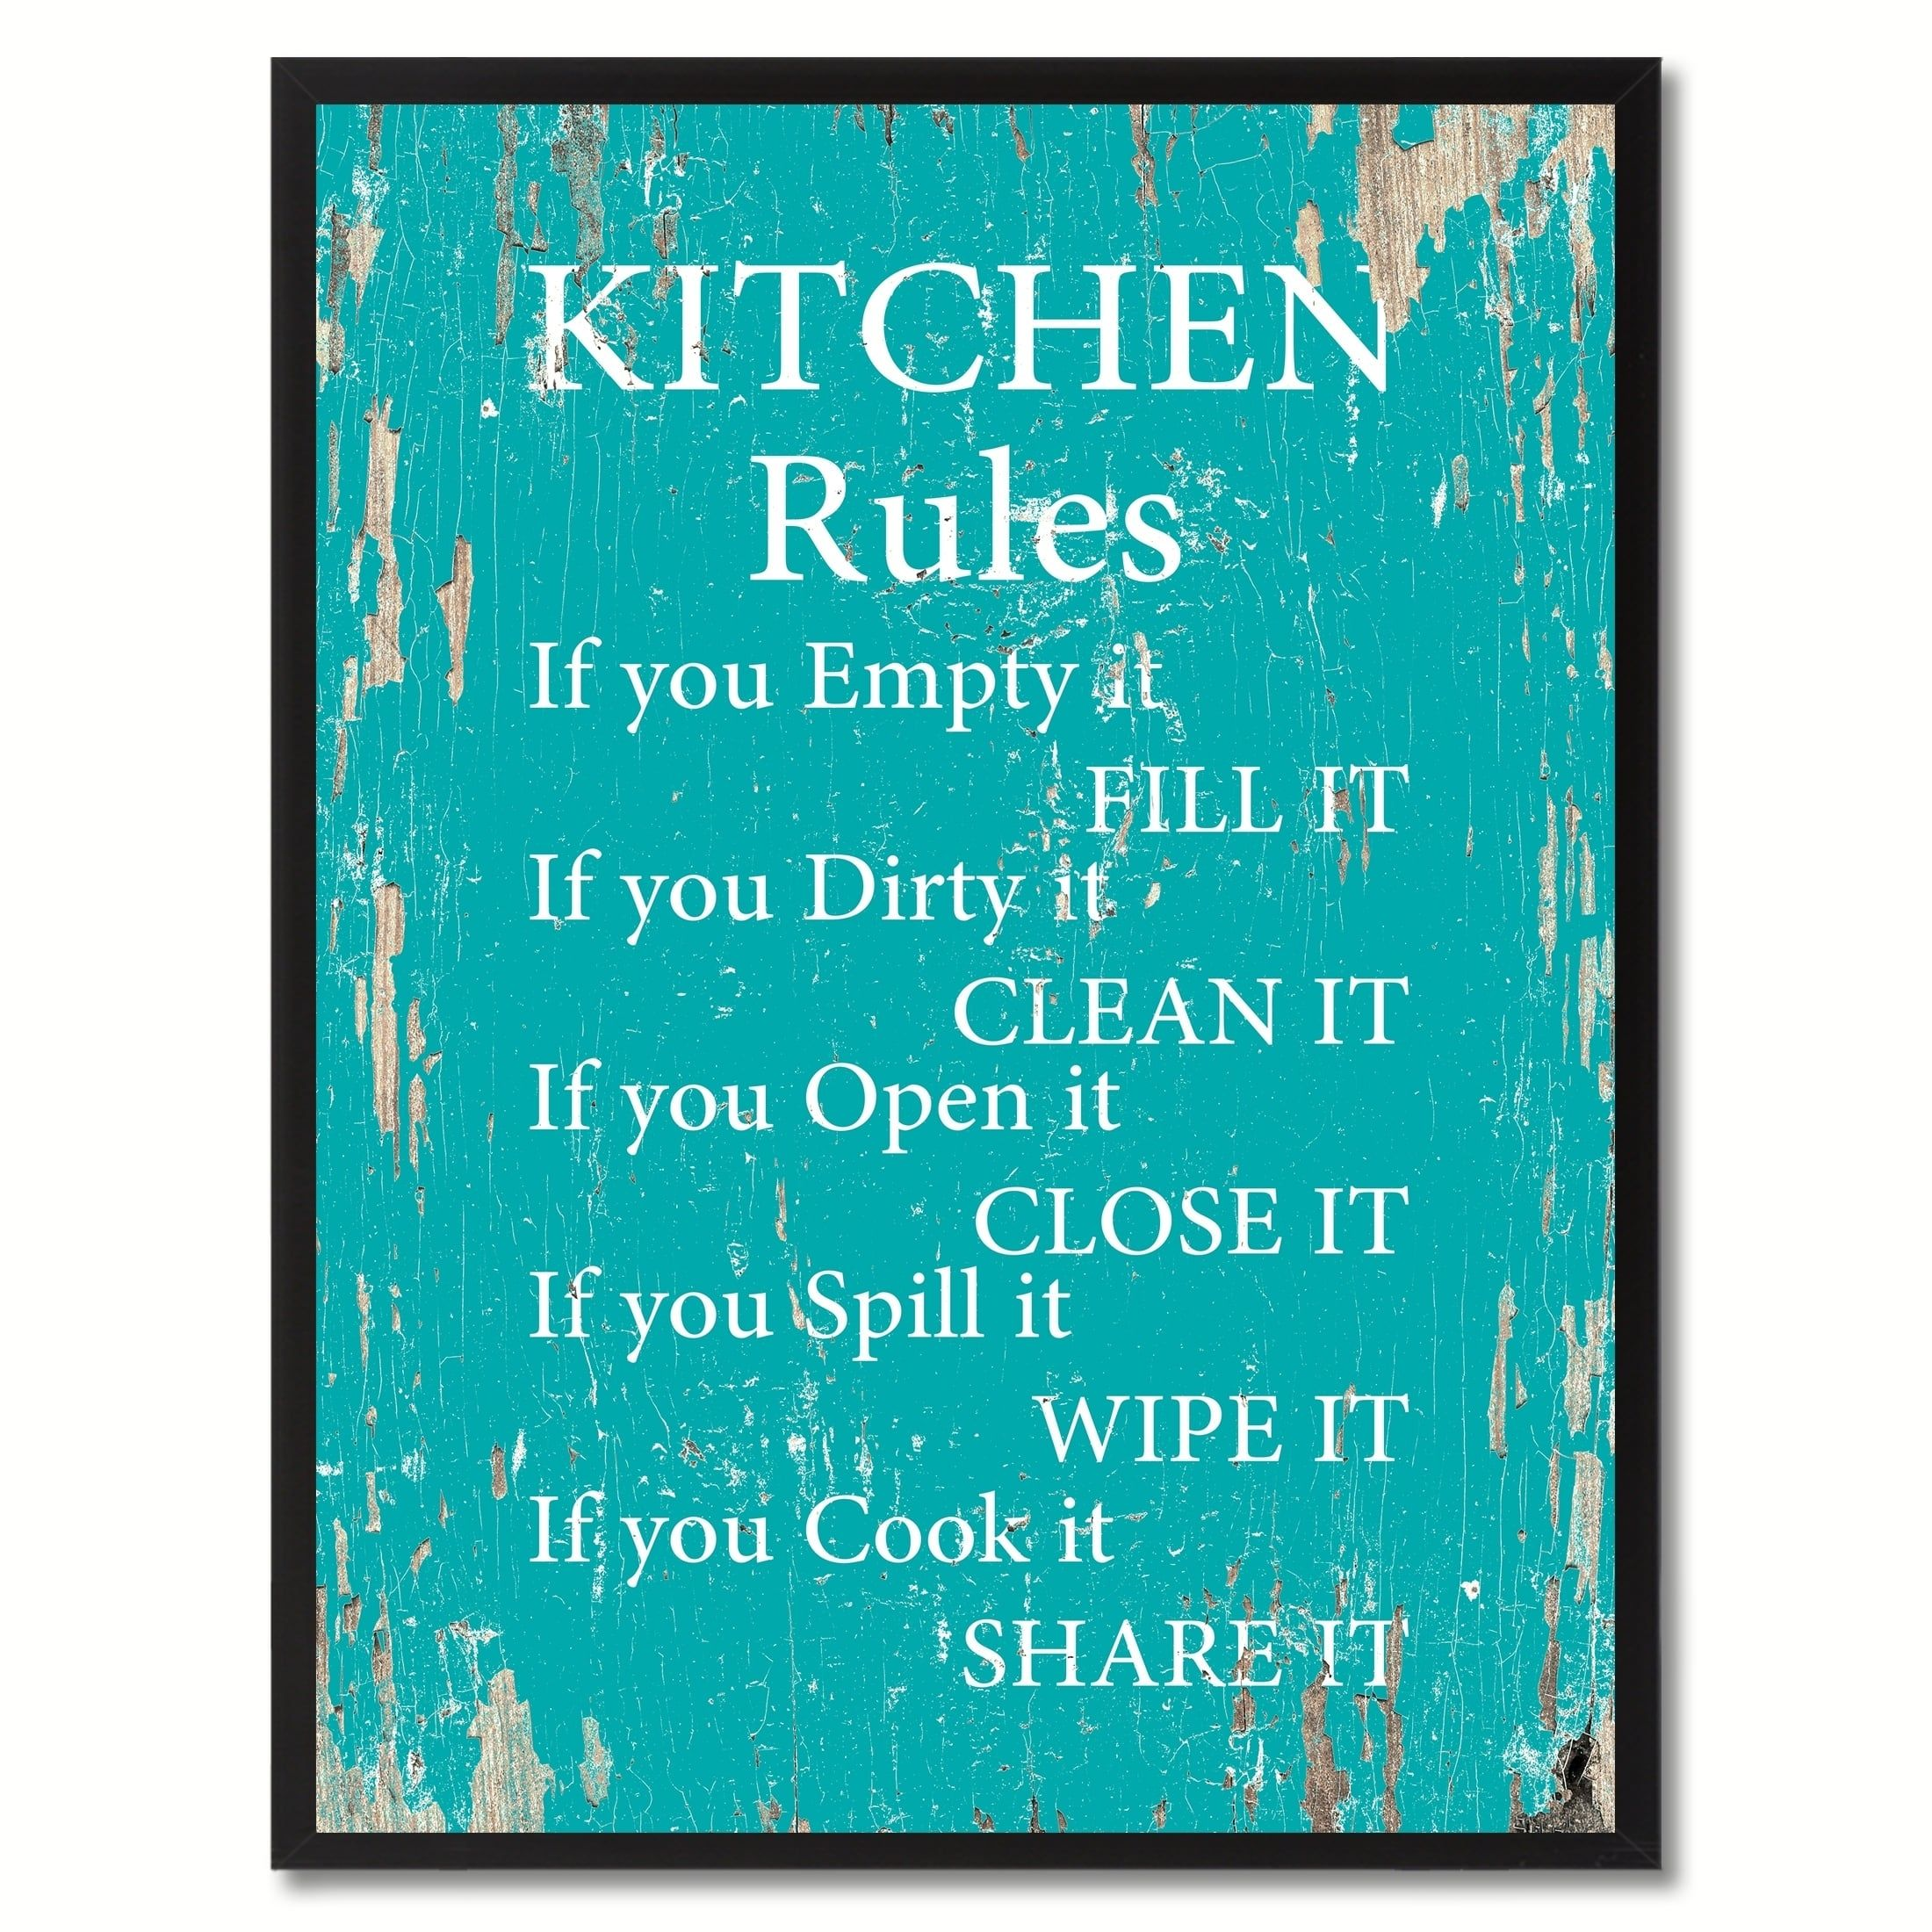 Kitchen Rules SayingCanvas Print Picture Frame Home Decor Wall Art ...